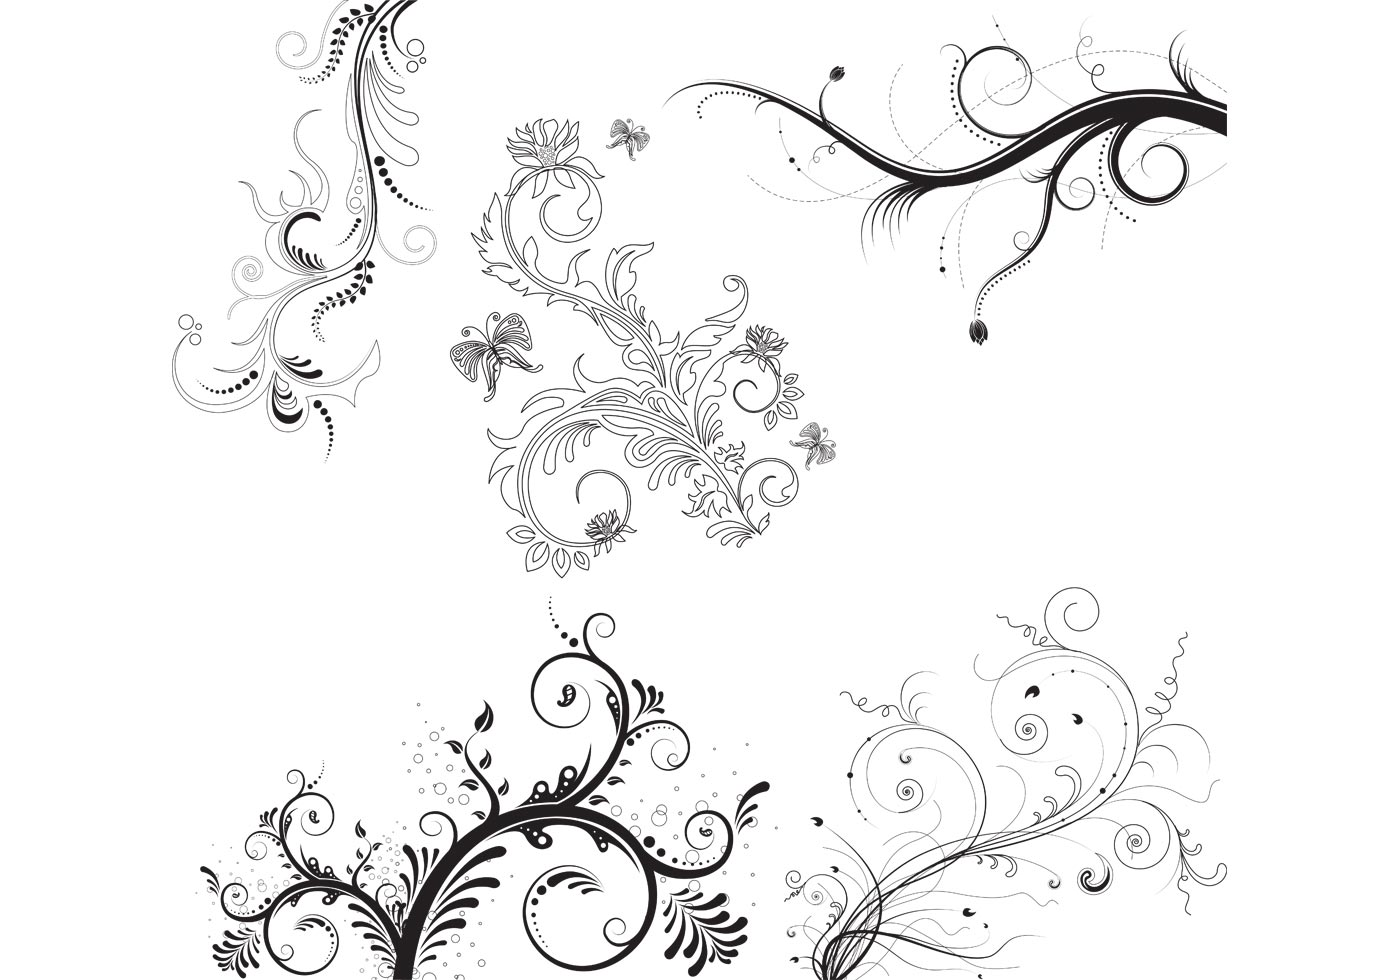 5 Floral Ornaments Download Free Vector Art Stock